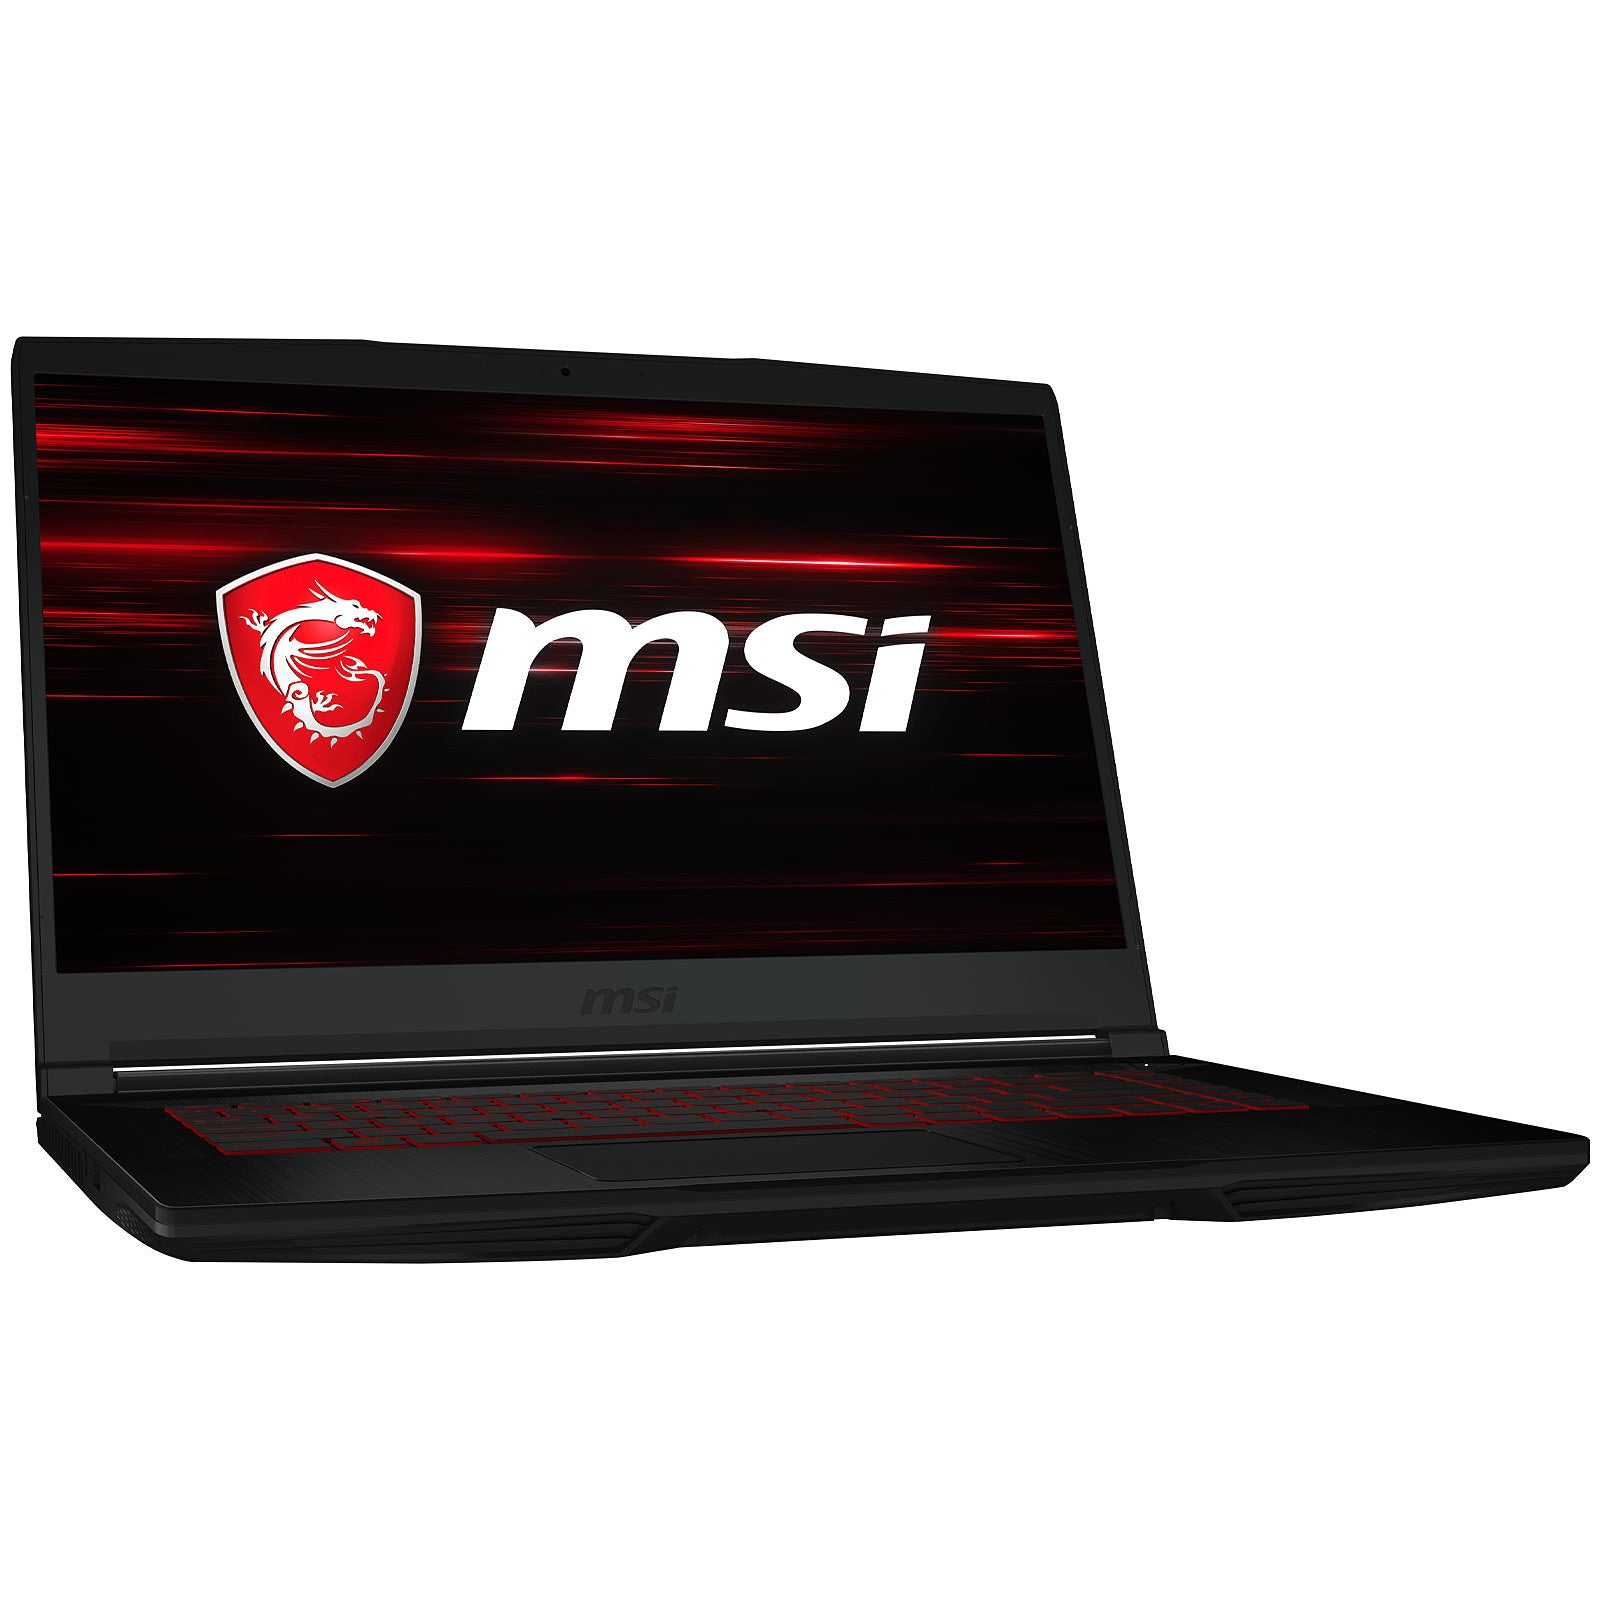 MSI GF63 Thin 10SCXR - Intel i5-10300H , SSD 256Go,HDD 1To, GTX1650 Max Q, GDDR6 4GB